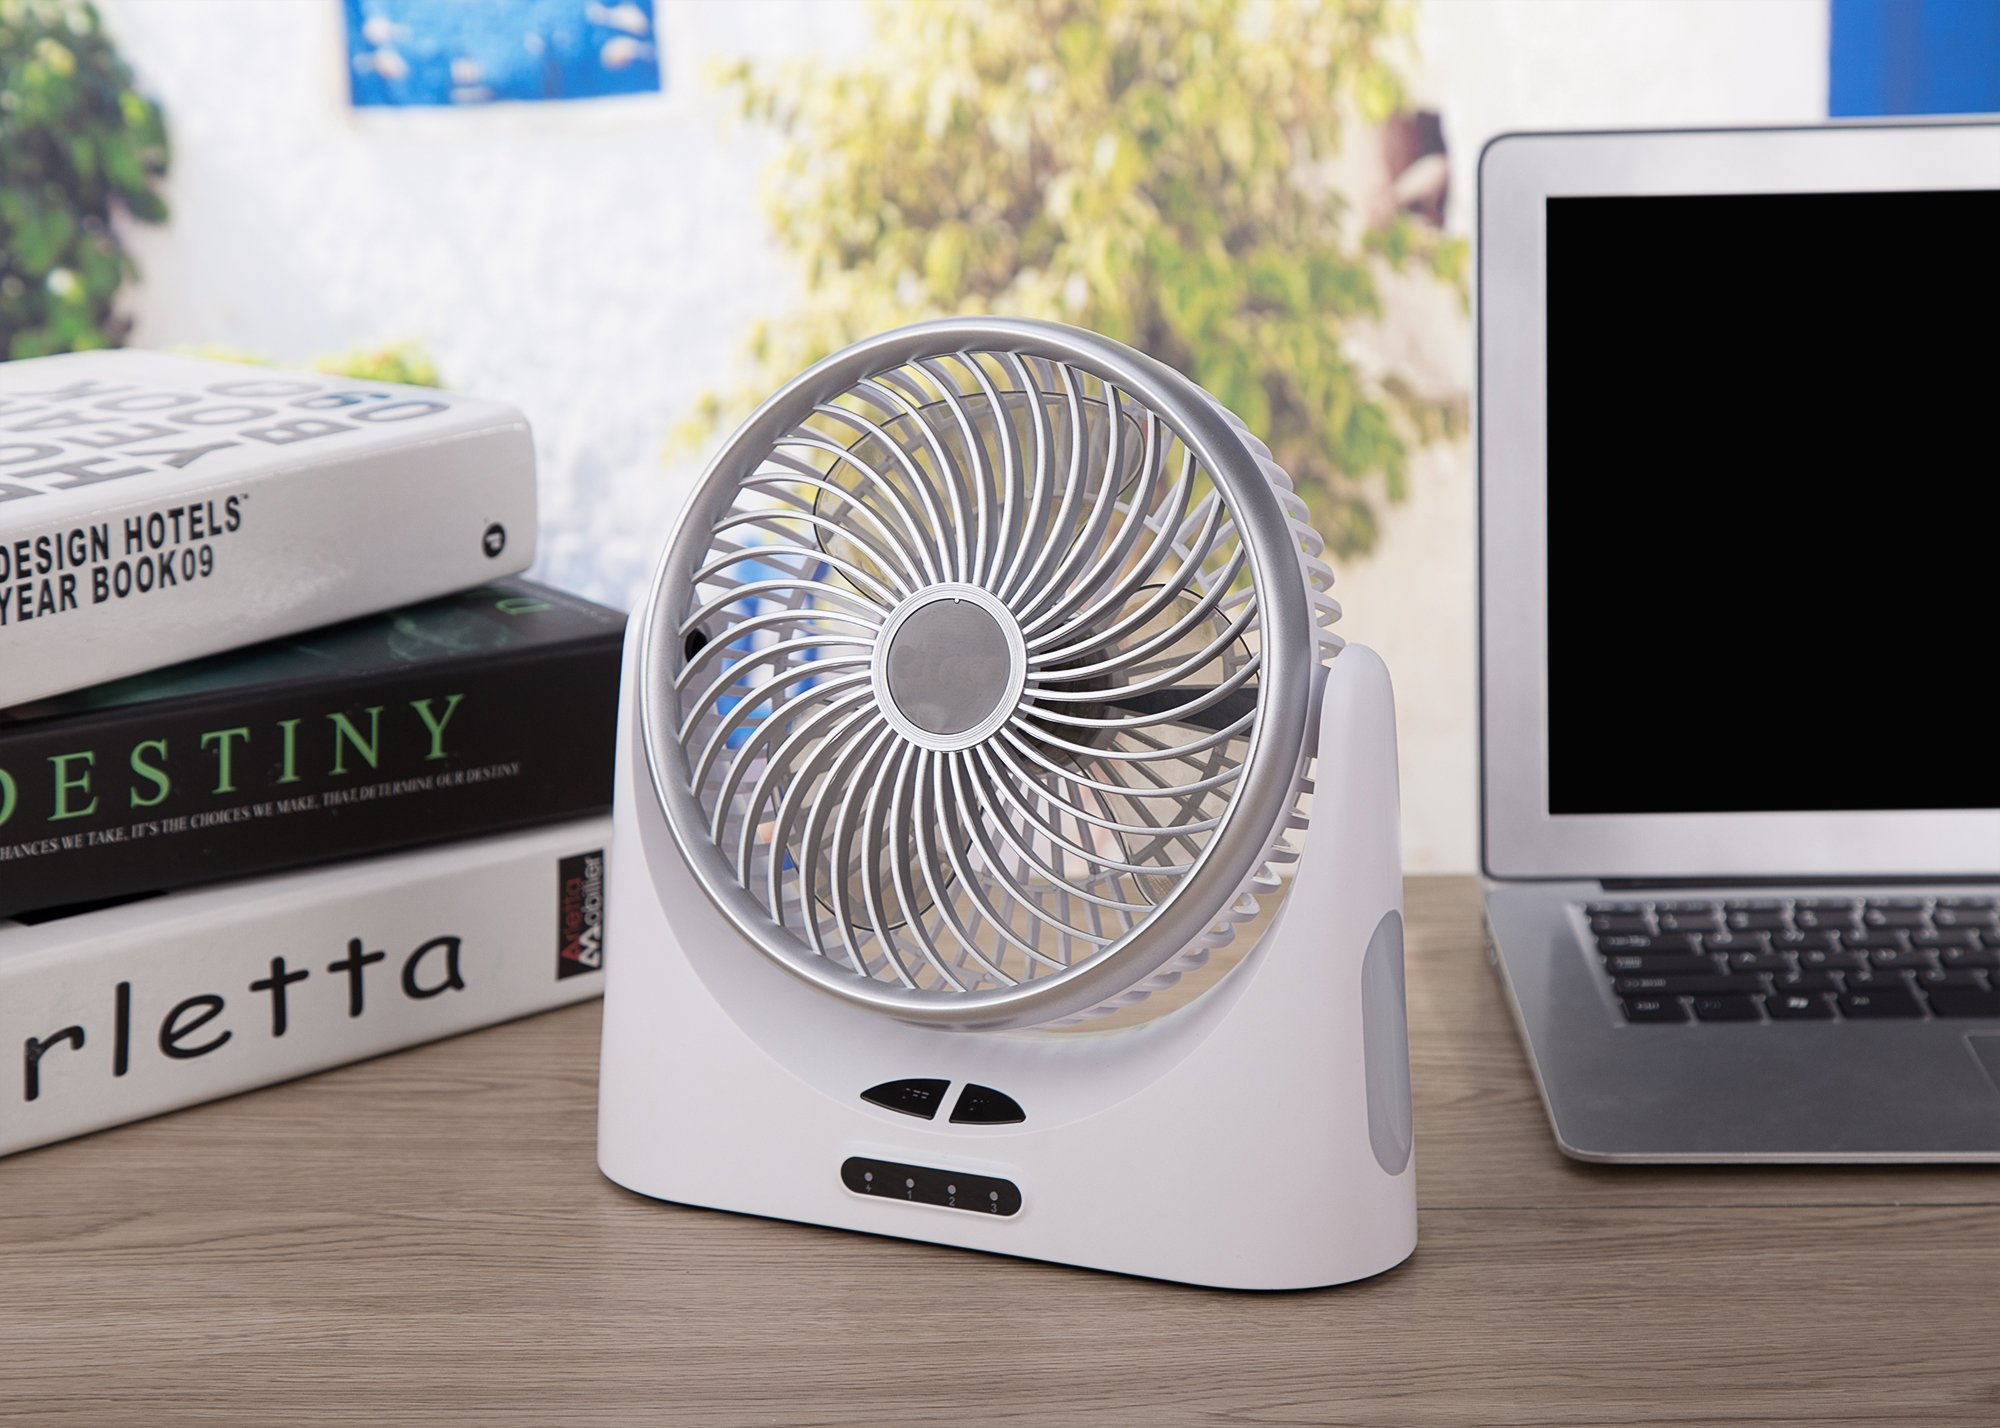 HCMAOE Mini USB Table Desk Personal Portable Air Circulator Fan 3 Speed, Lower Noise, Powered by USB or 4000mAh Rechargeable 18650 Battery with Power bank Function, Side LED Light for Office, (Silver) by HCMAOE (Image #6)